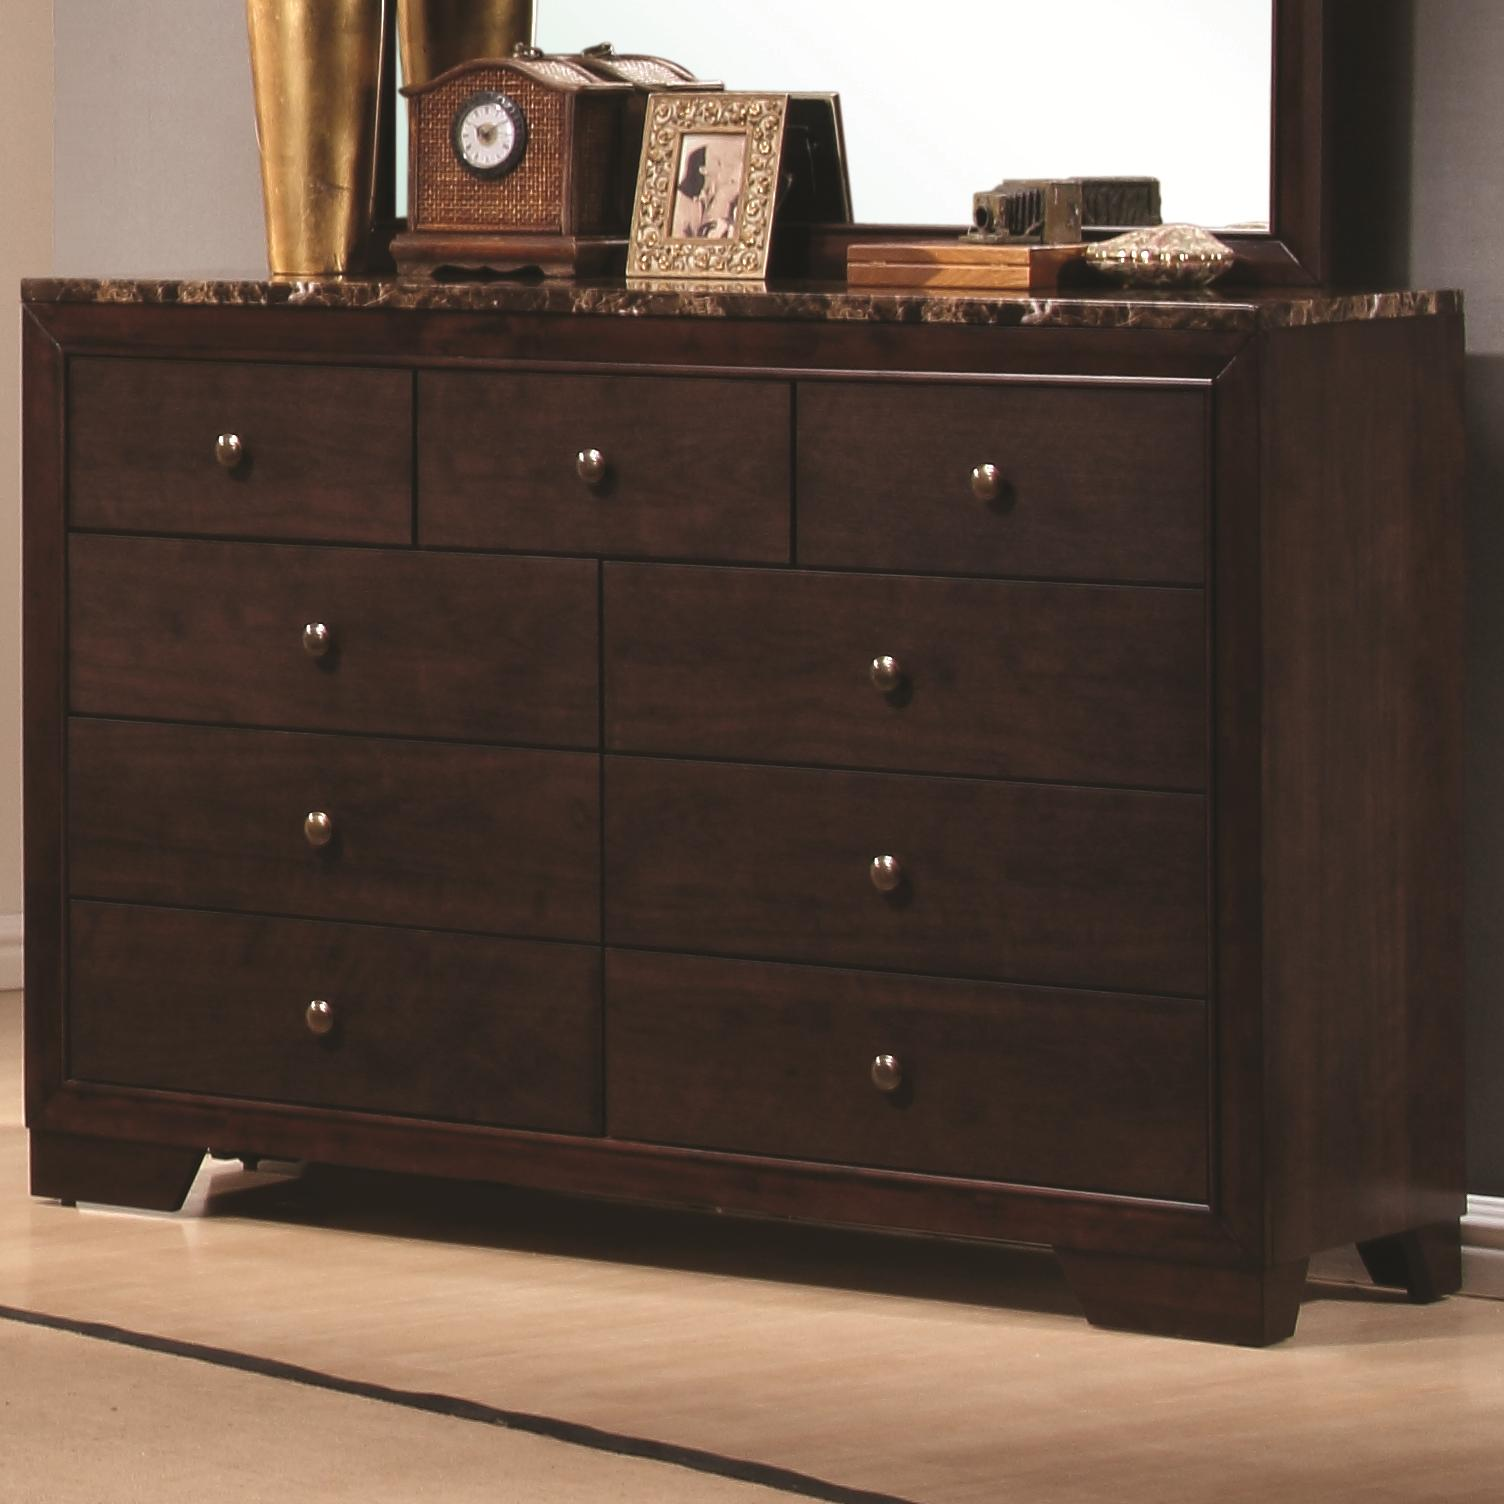 Conner Dresser by Coaster at Northeast Factory Direct